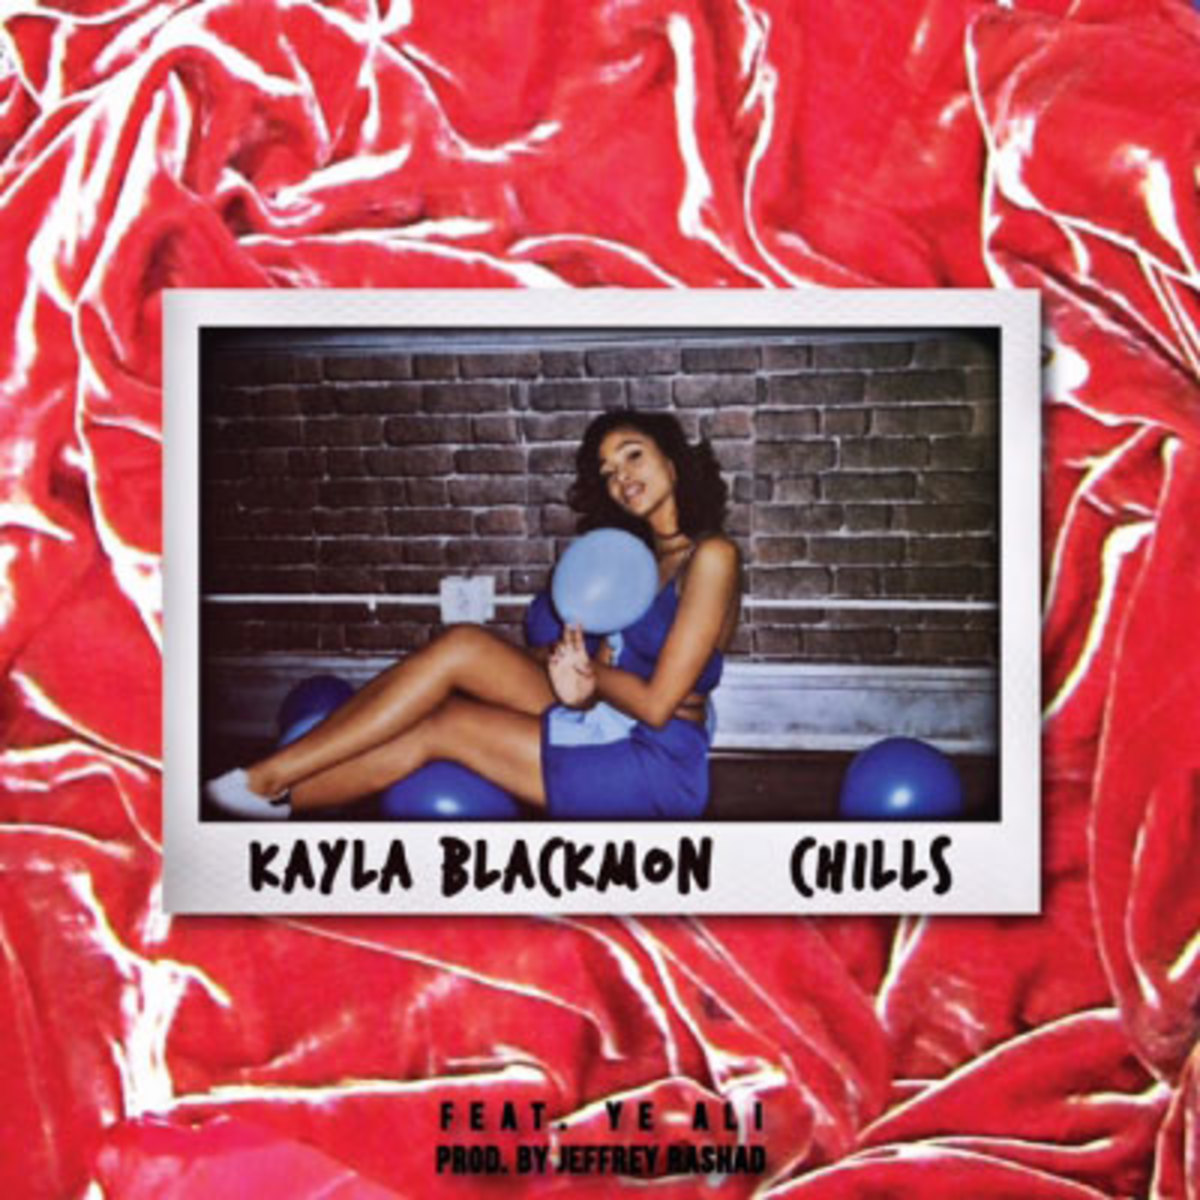 kayla-blackmon-chills.jpg